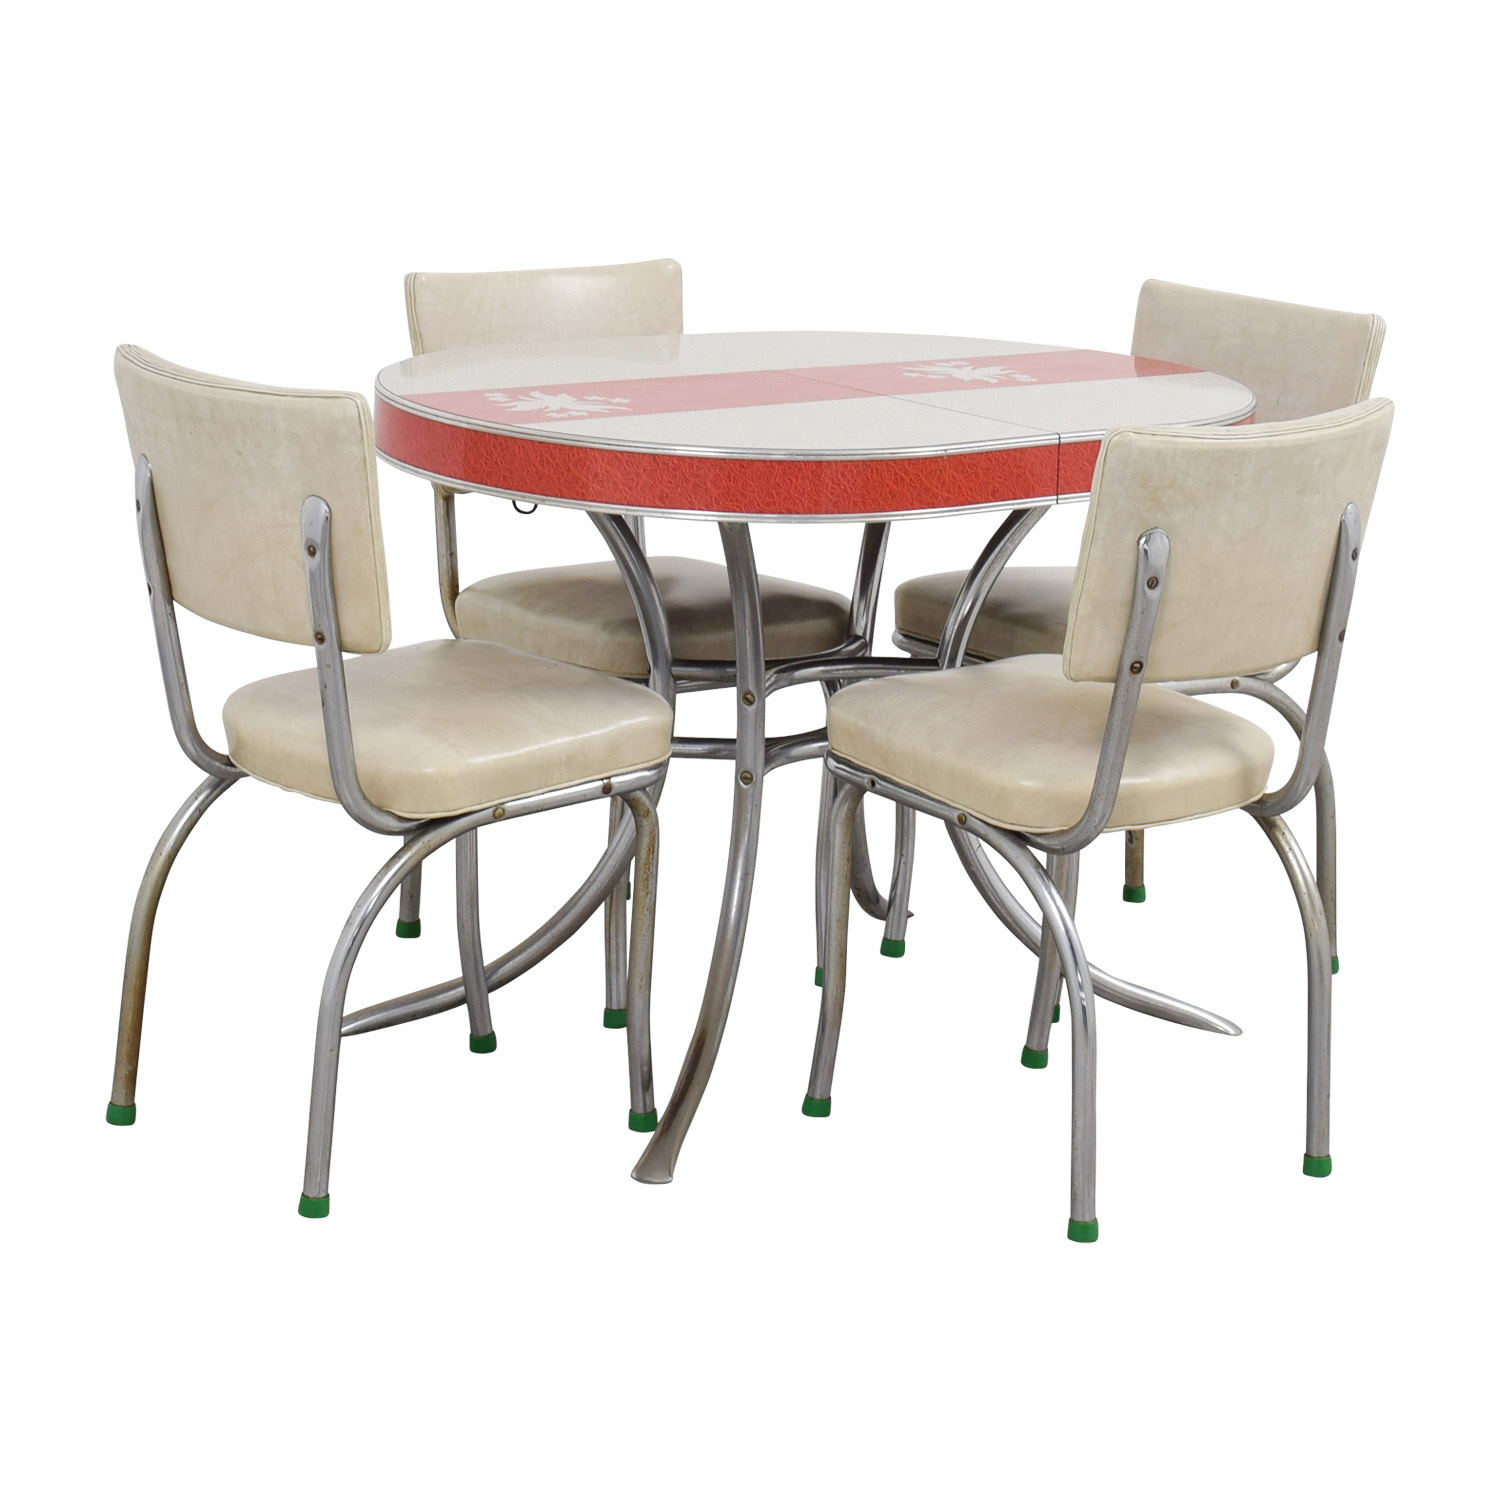 90 off vintage extendable formica top aluminum kitchen table and chairs tables - Formica top kitchen table ...